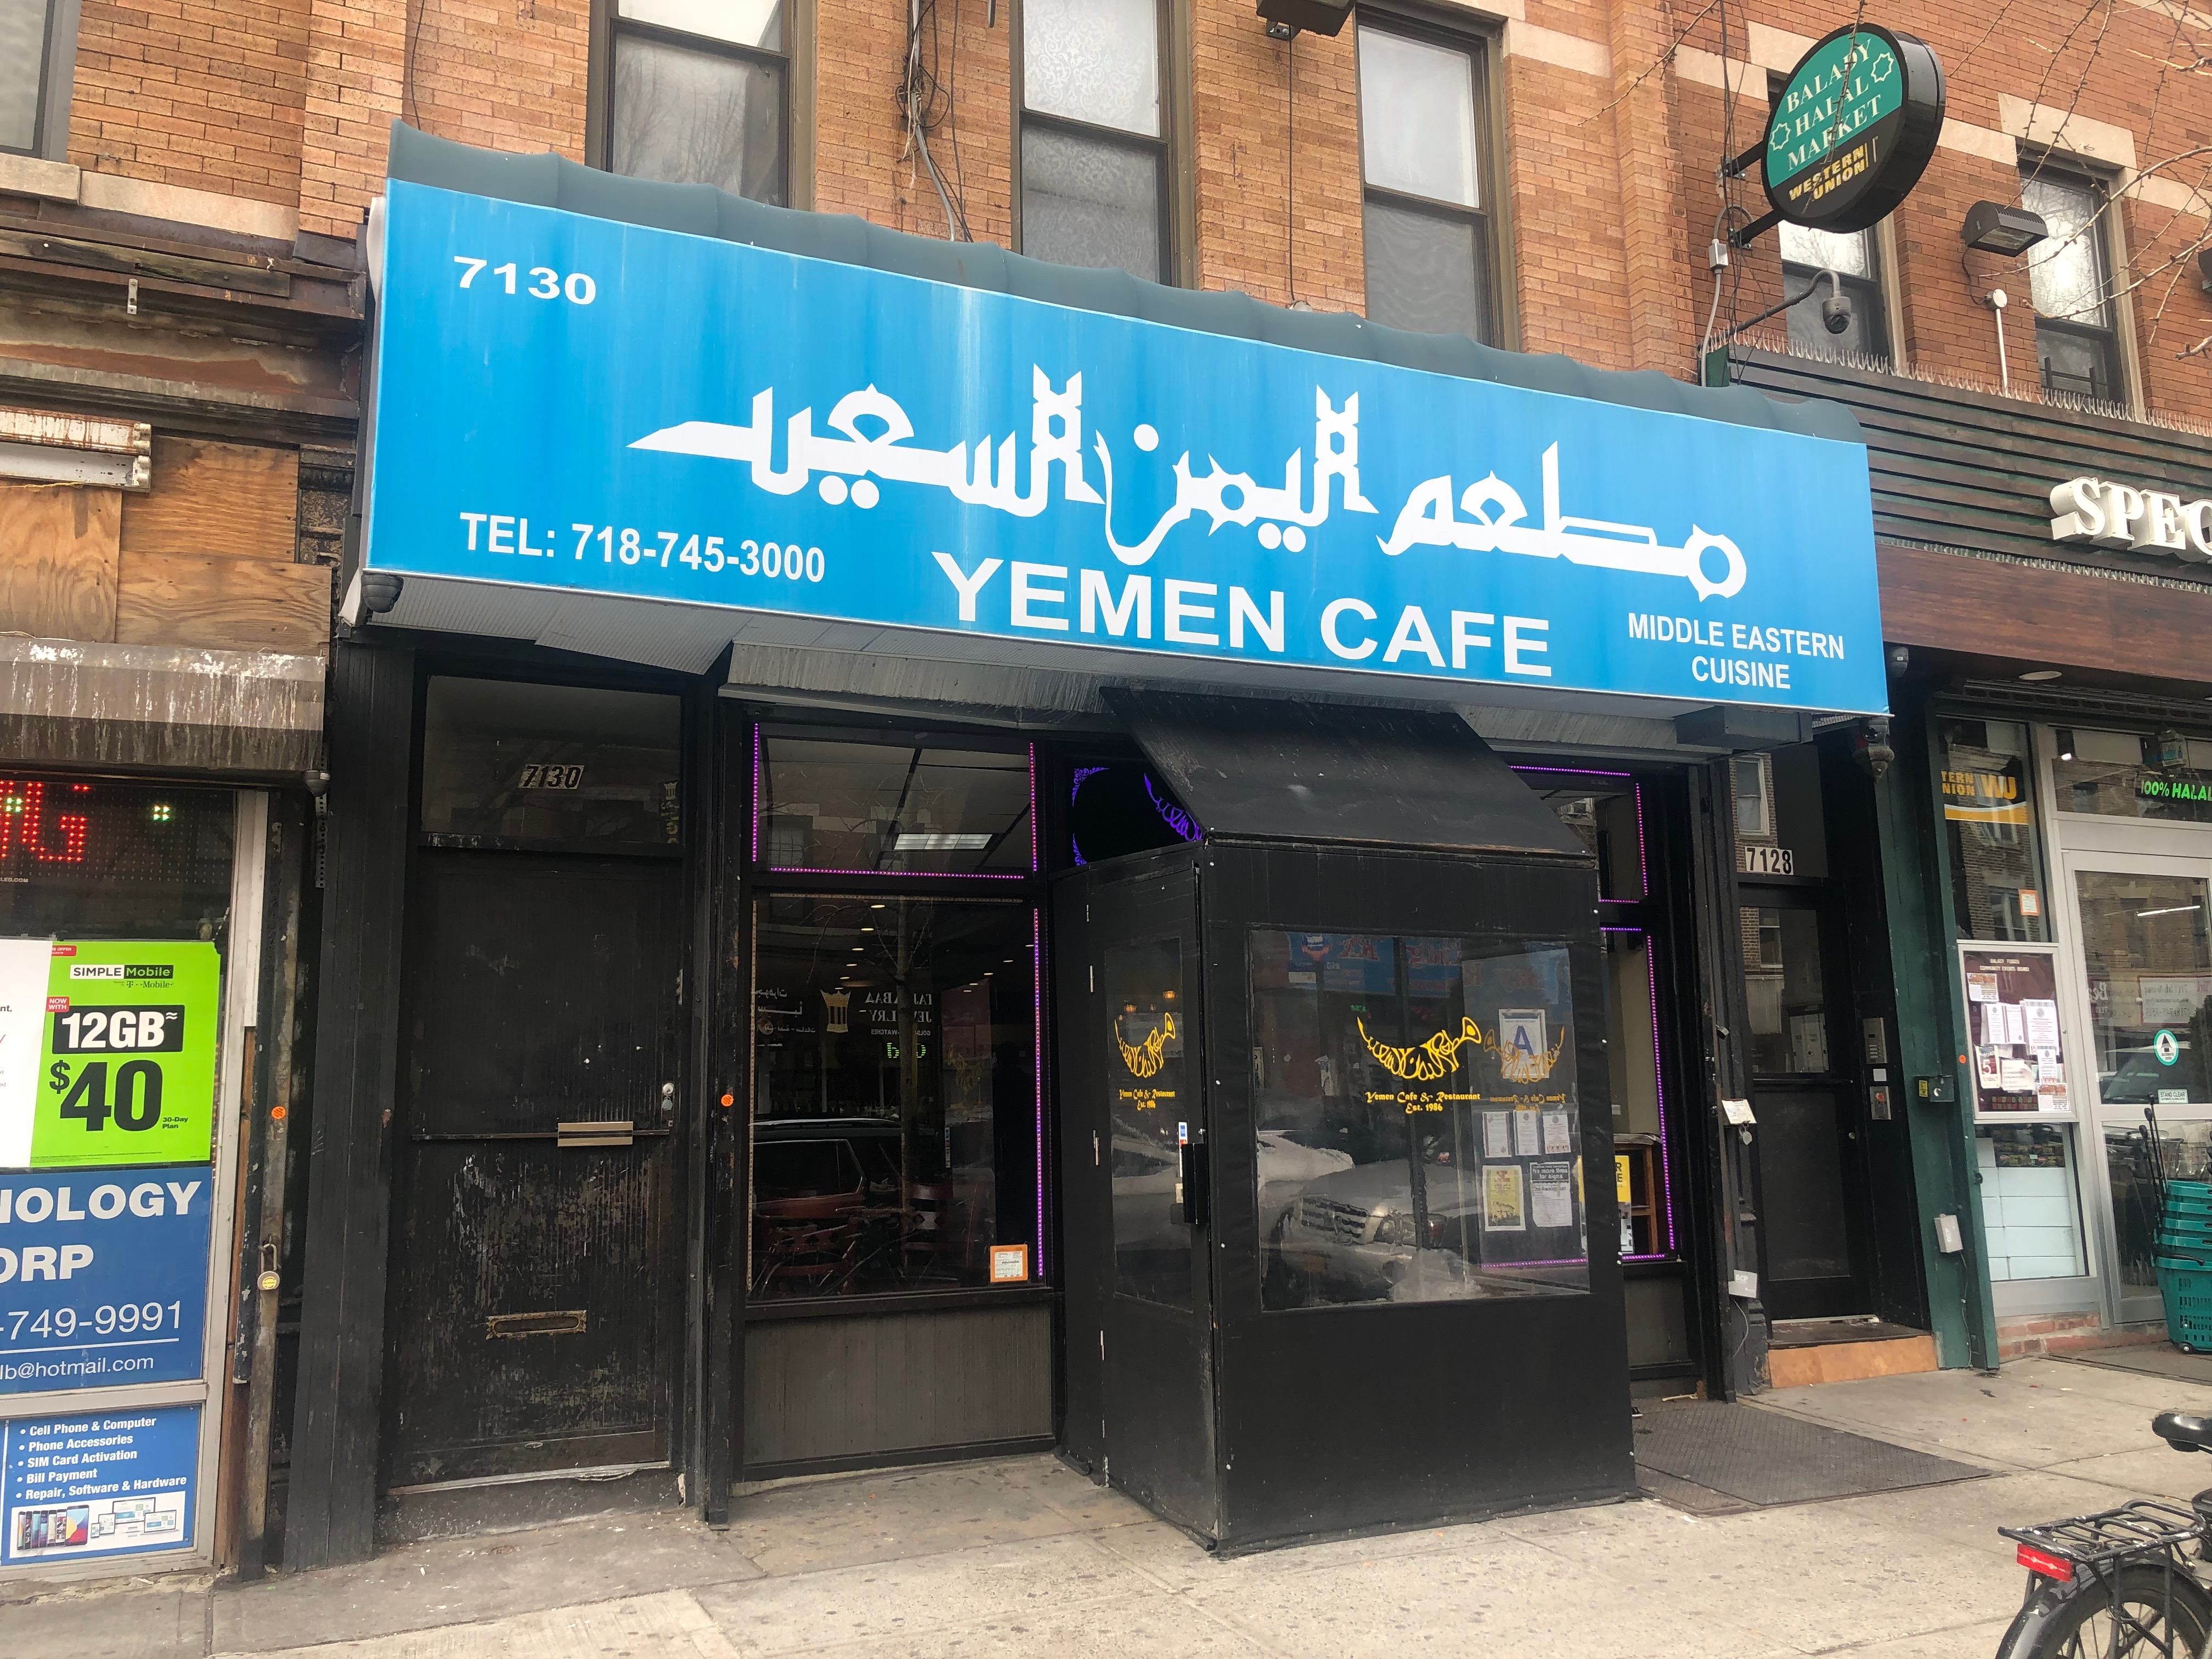 Yemen Café at 7130 Fifth Ave. in Bay Ridge. Scam artist secured thousands of dollars from owners after claiming he'd fronted the money for OATH fines levied against the business. (Photo credit: Mahmood Alsubai)